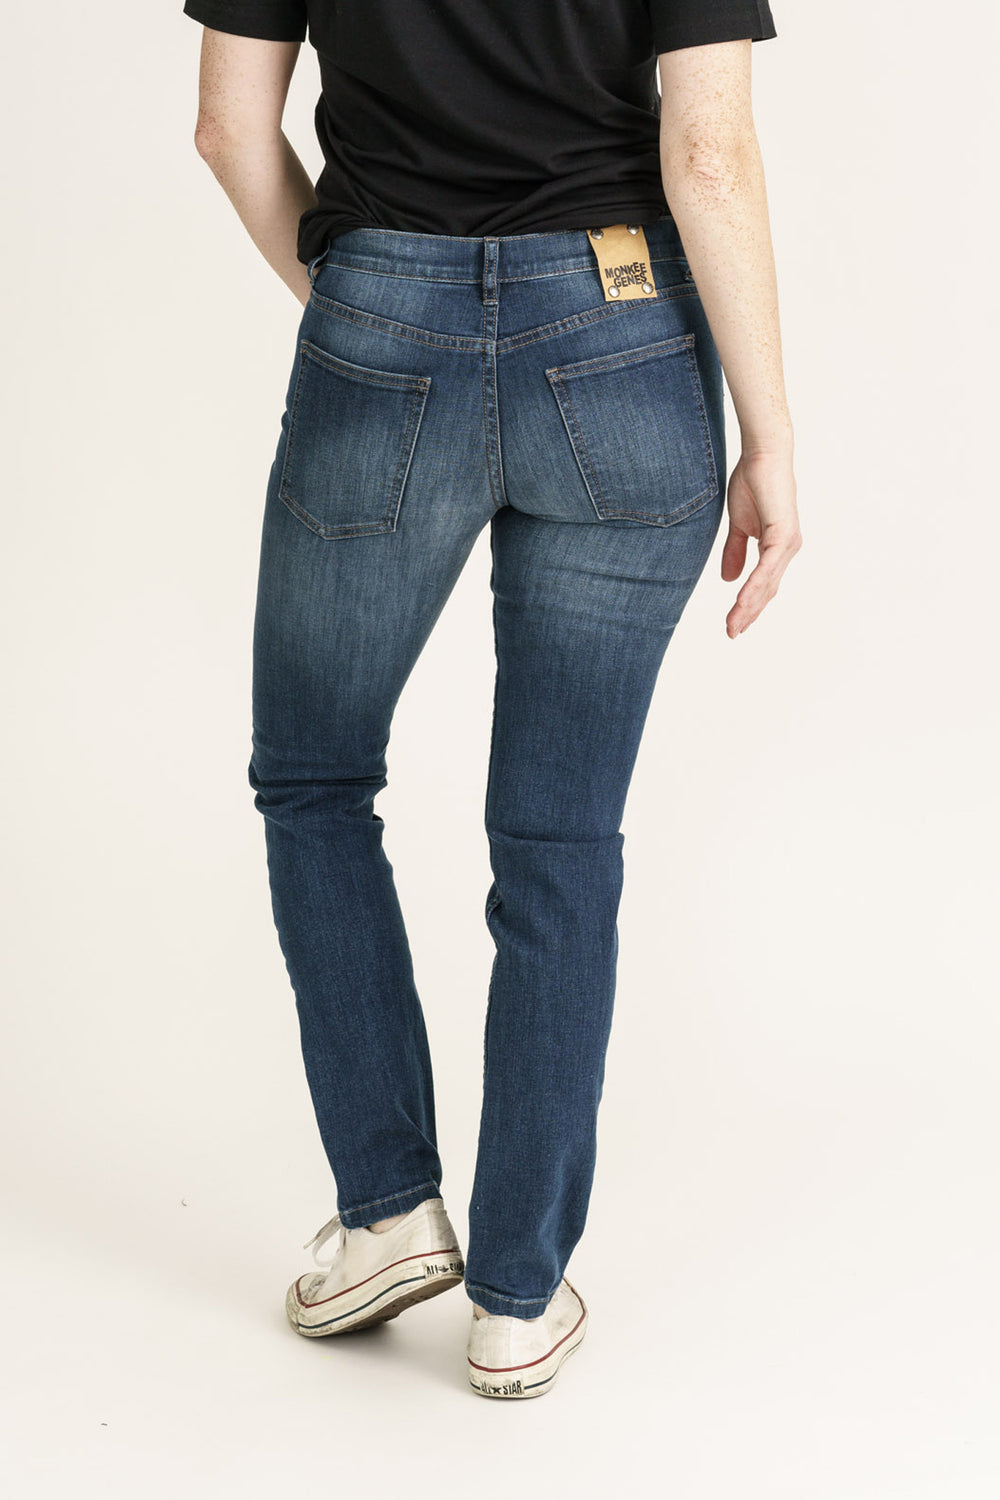 CLASSIC SKINNY // Organic Classic Skinny Jeans in Dark Blue Wash - Monkee Genes Organic Jeans Denim - Women's Classic Skinny Monkee Genes Official  Monkee Genes Official